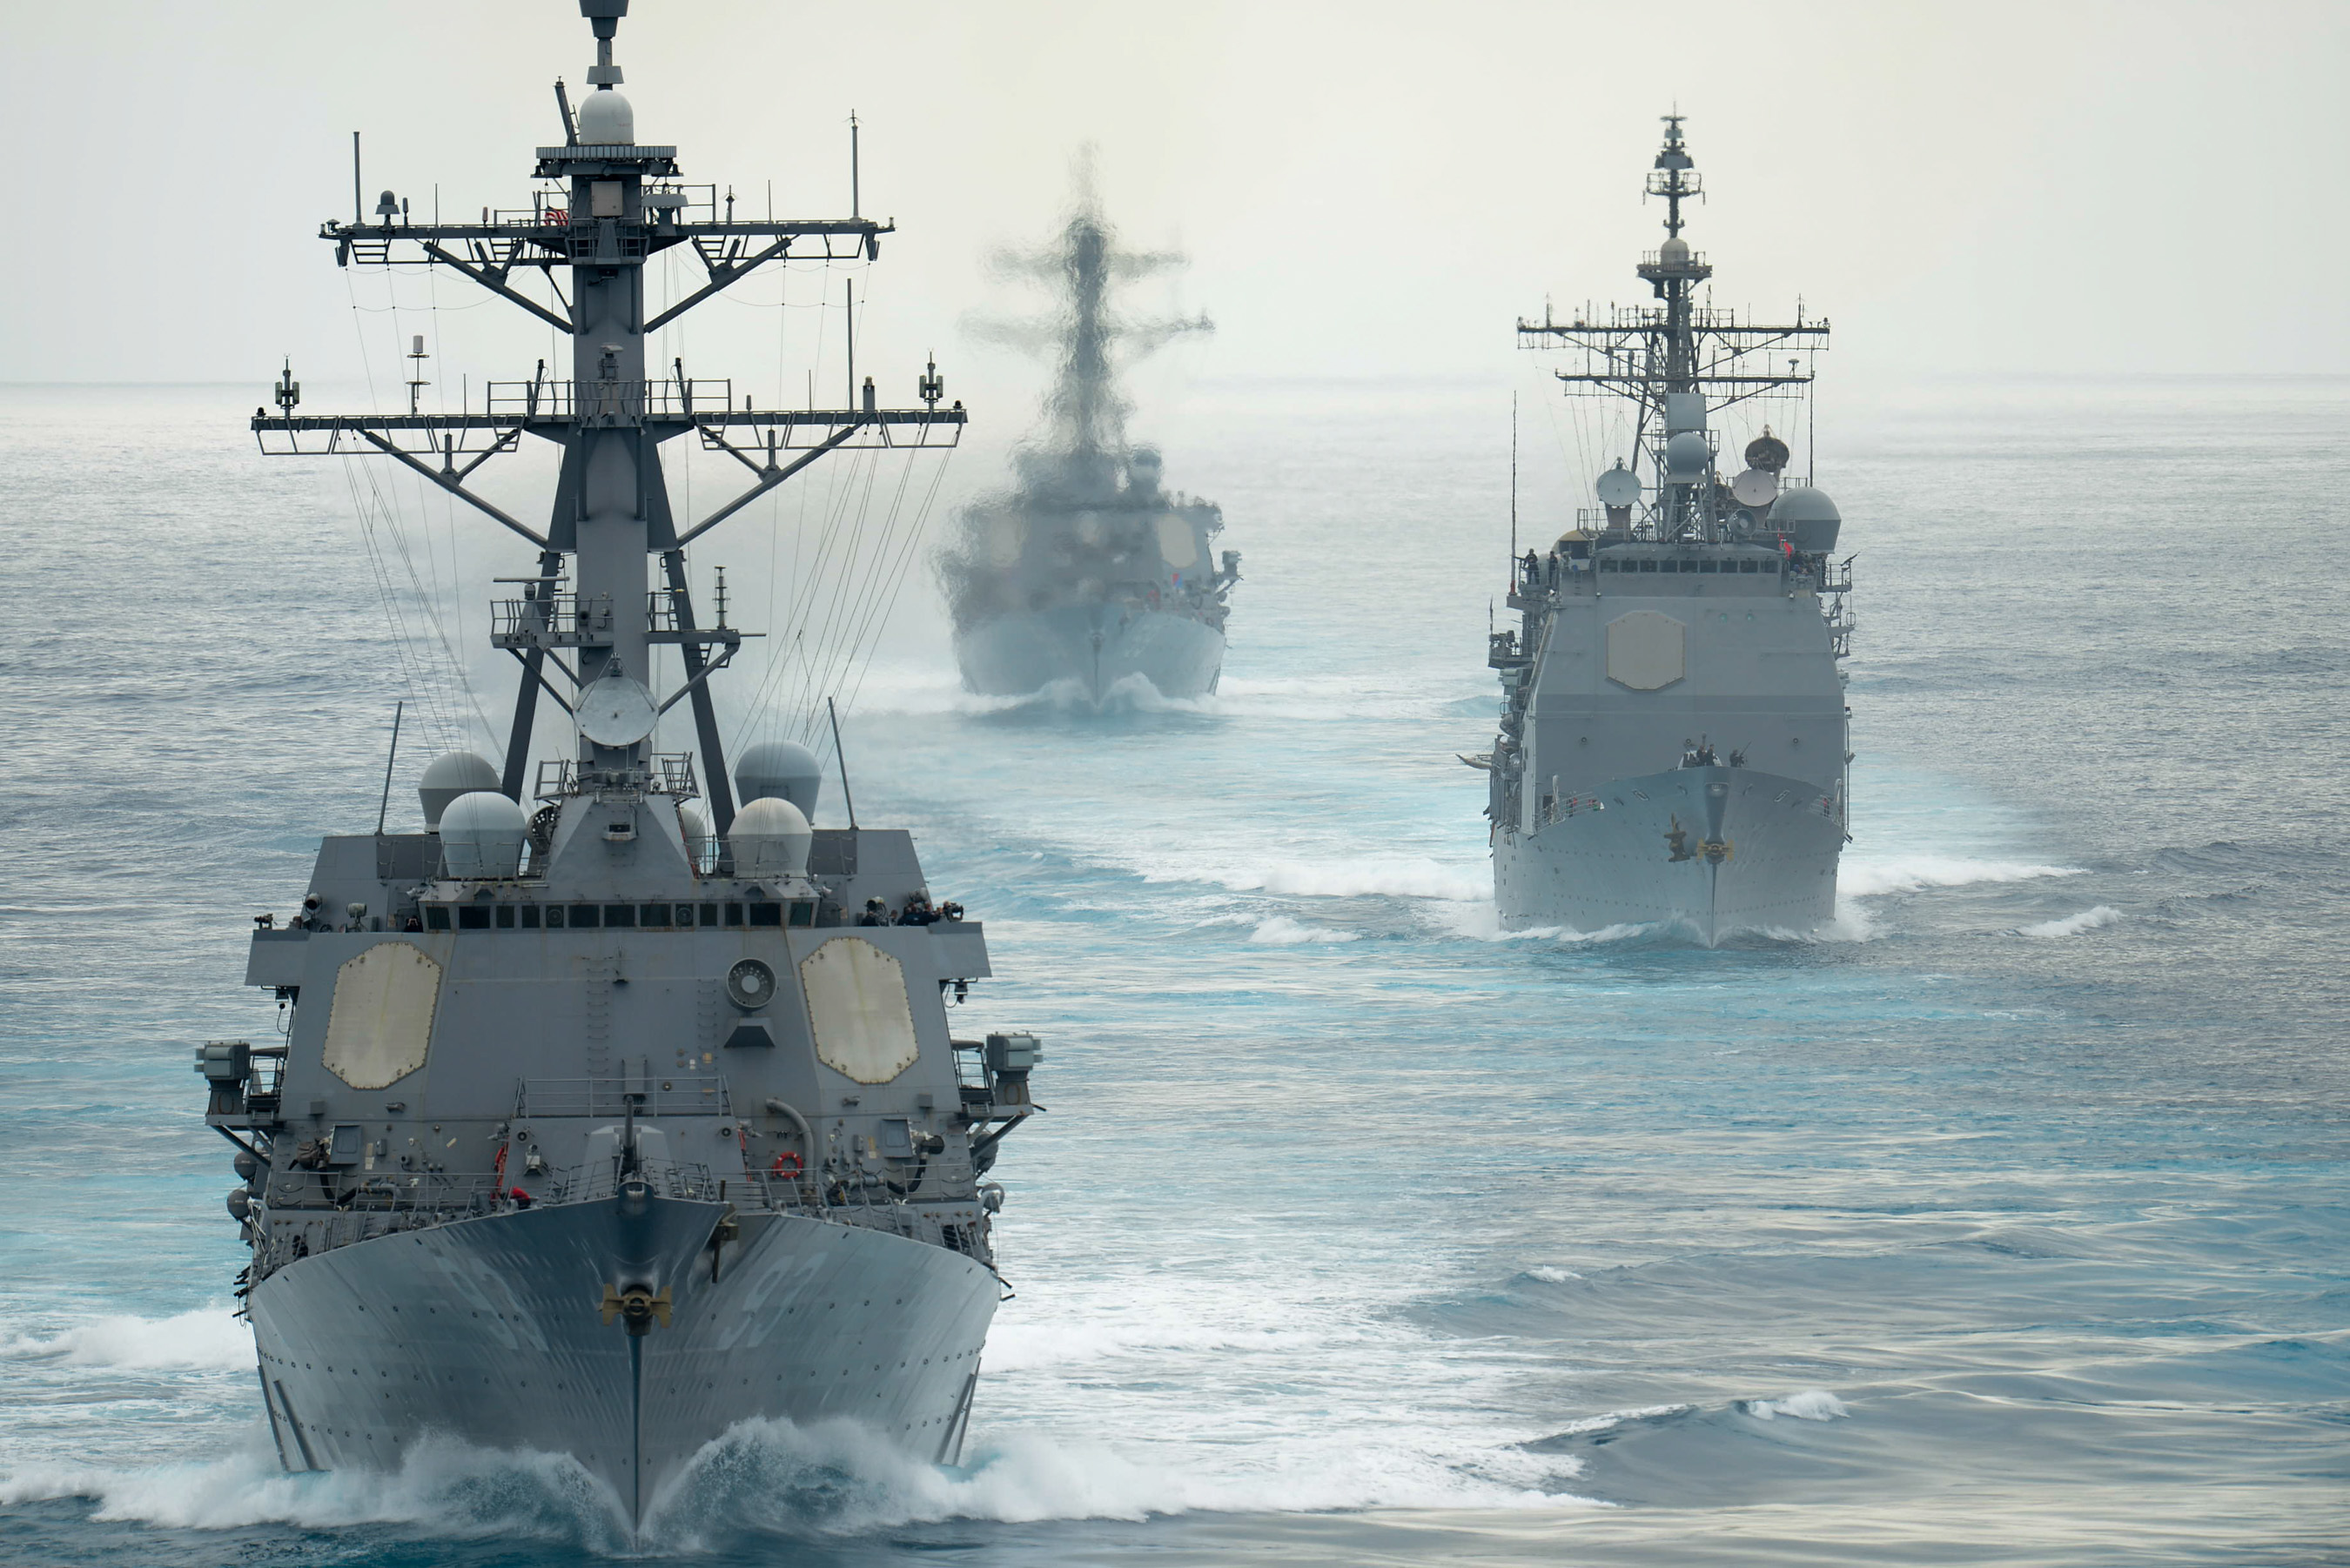 The guided-missile destroyers USS Russel (DDG 59), USS Chung Hoon (DDG 93) and the guided-missile cruiser USS Mobile Bay (CG 53) follow the aircraft carrier USS John C. Stennis (CVN 74) during a show of force transit on Aug. 11, 2015. US Navy photo.